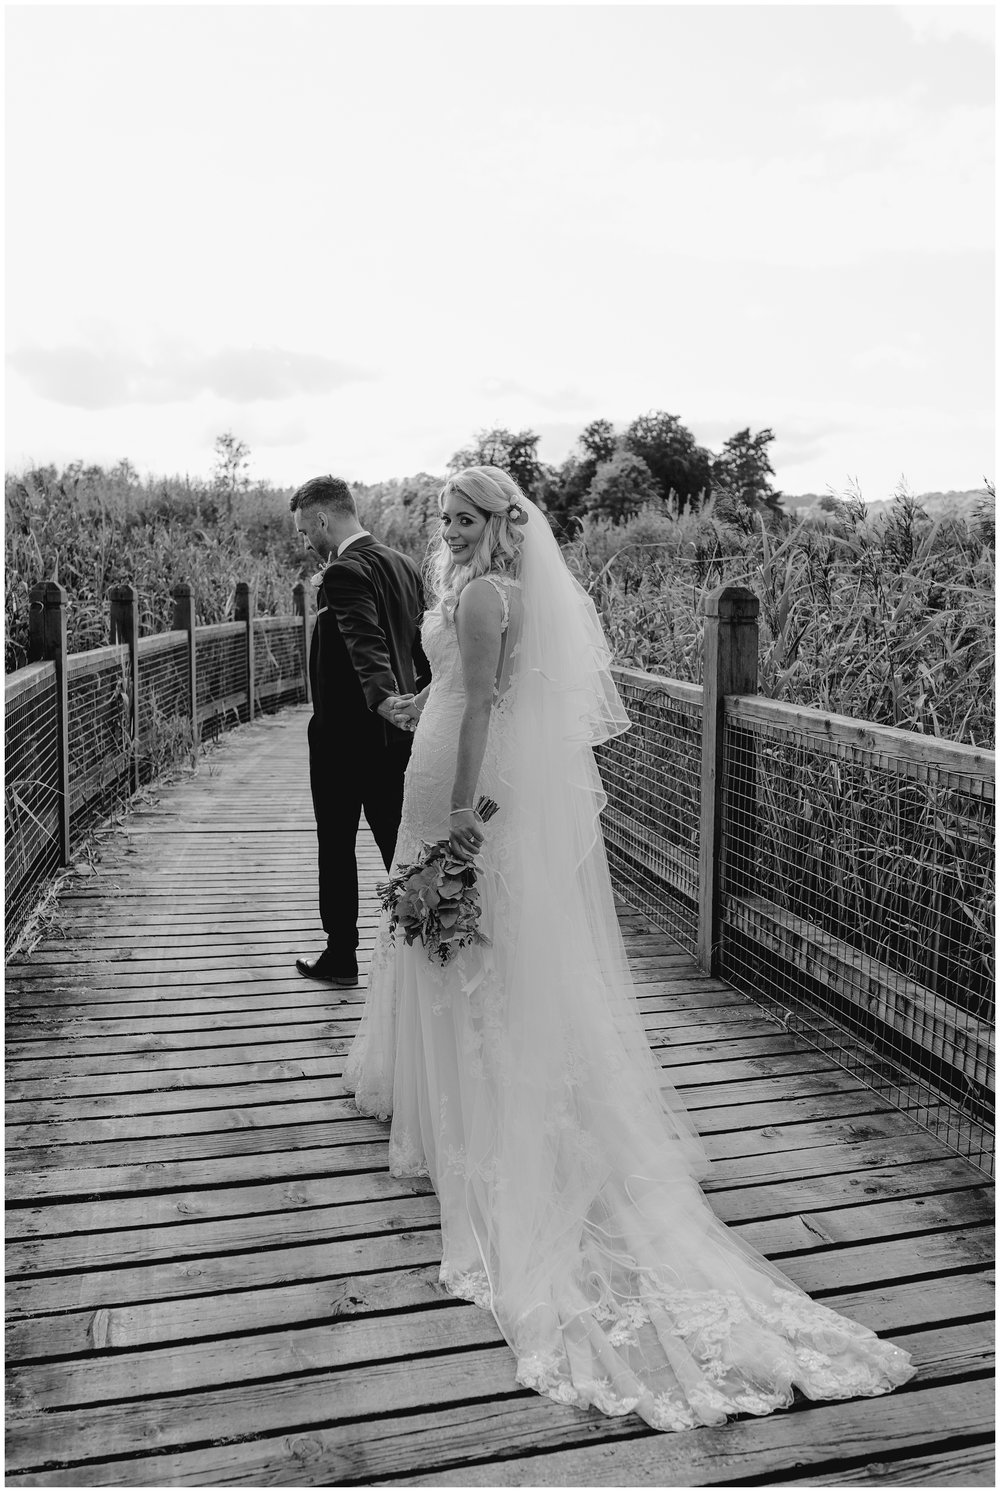 louise_keith_lough_erne_wedding_jude_browne_photography_0064.jpg